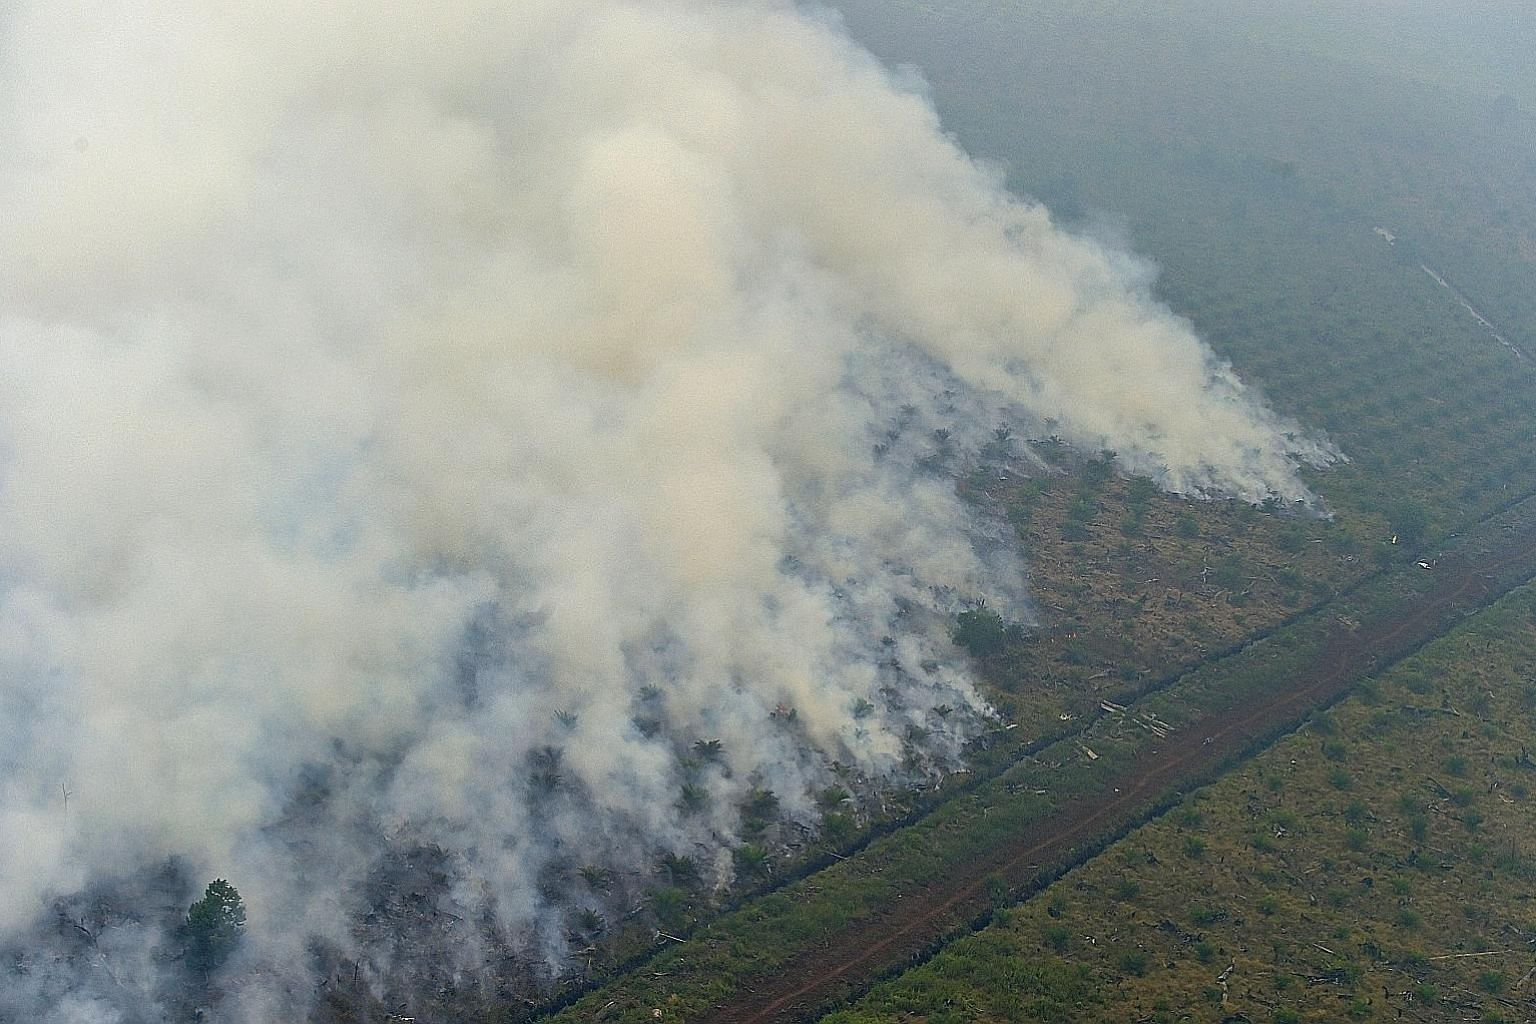 Fires burning in Pelalawan, Riau province, in 2015. The fires caused 140,000 Indonesians to suffer respiratory ailments after being exposed to the choking haze that travelled across borders and blanketed parts of Singapore and Malaysia.